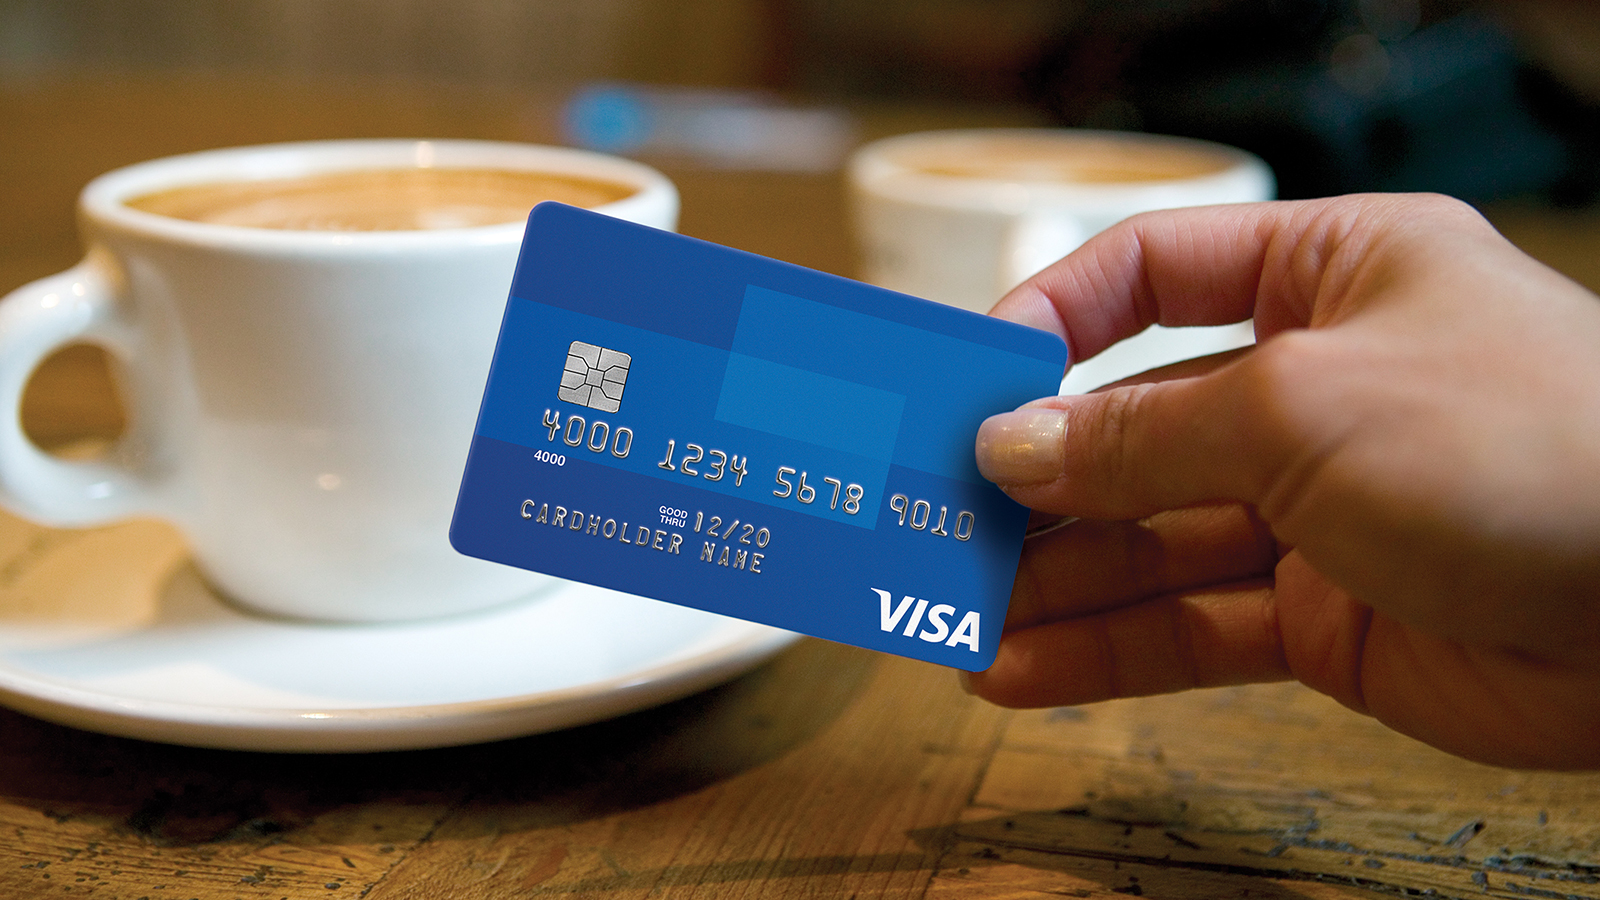 Visa-card-cafe-1600x900